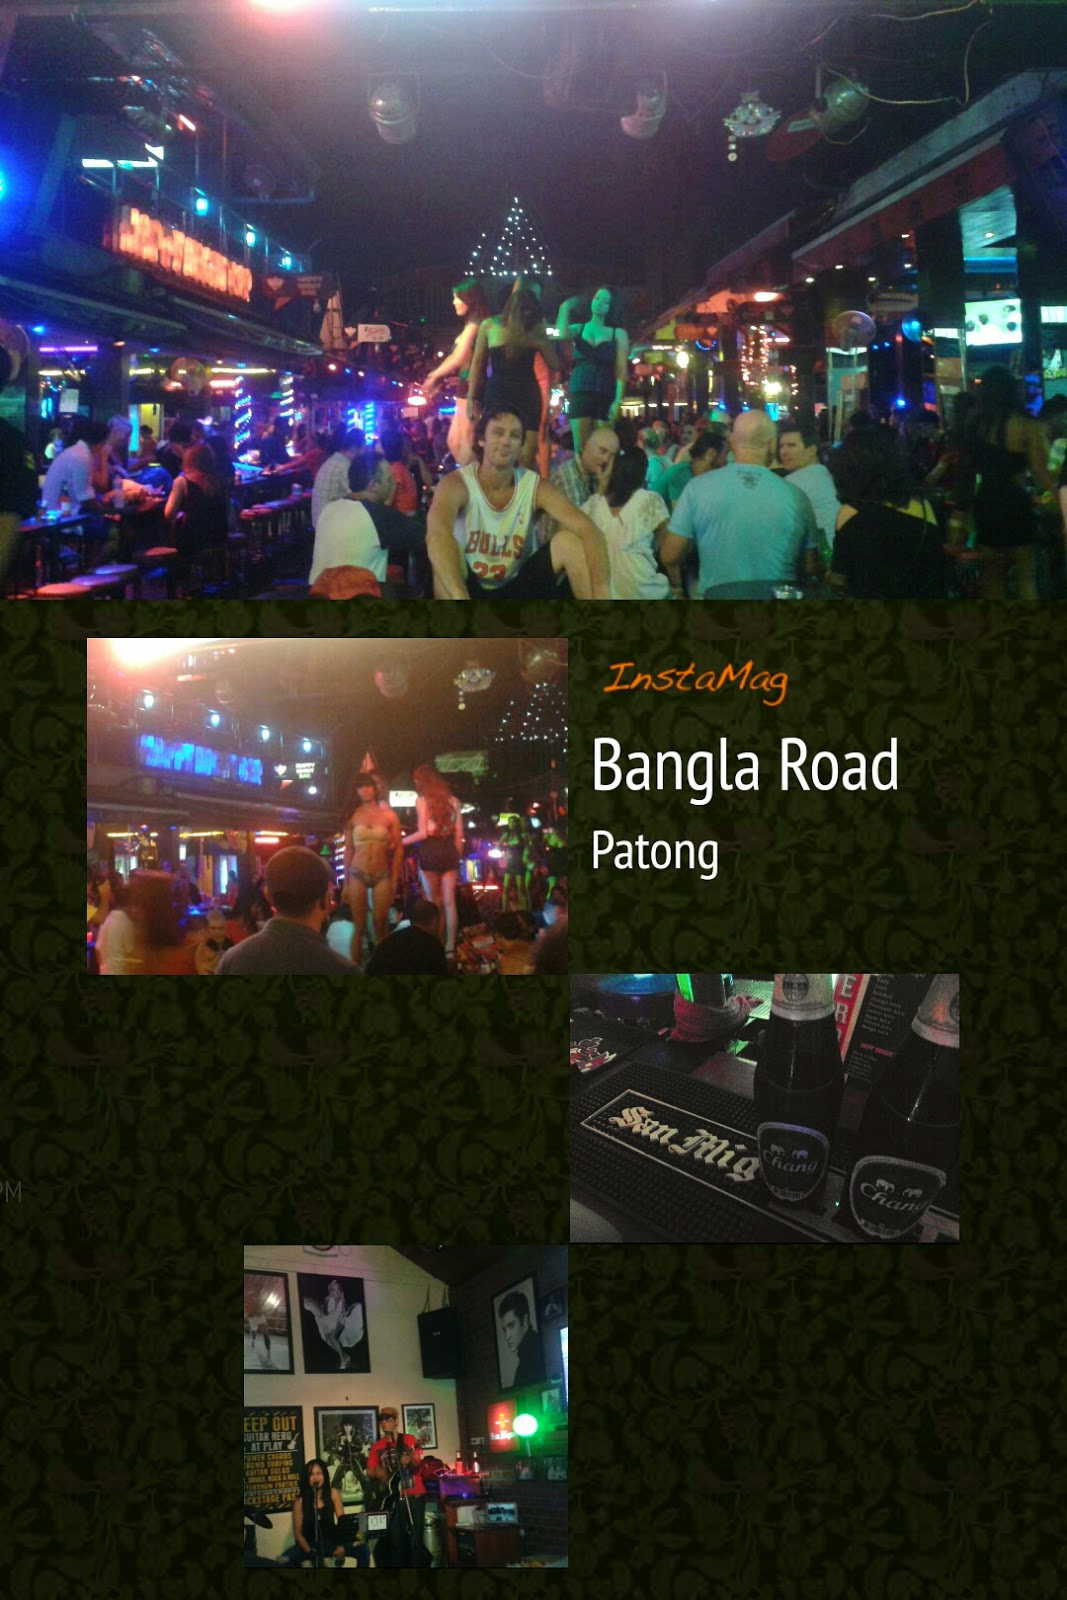 bangla road - Patong